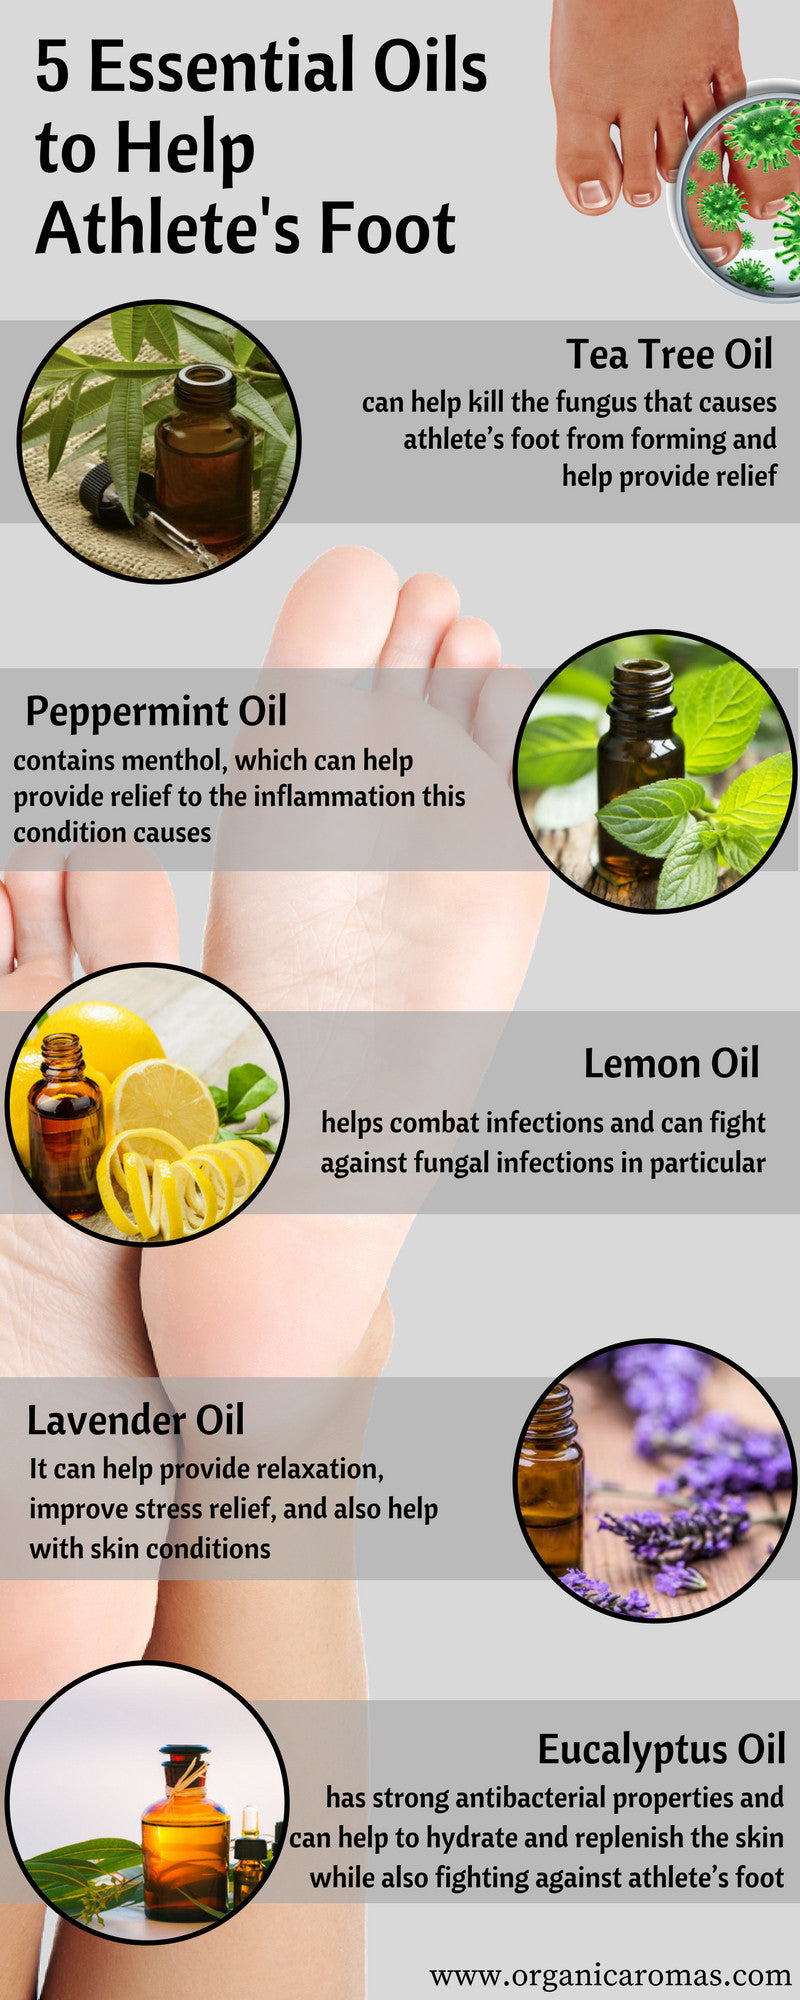 5 Essential Oils to Help Athlete's Foot Naturally - Organic